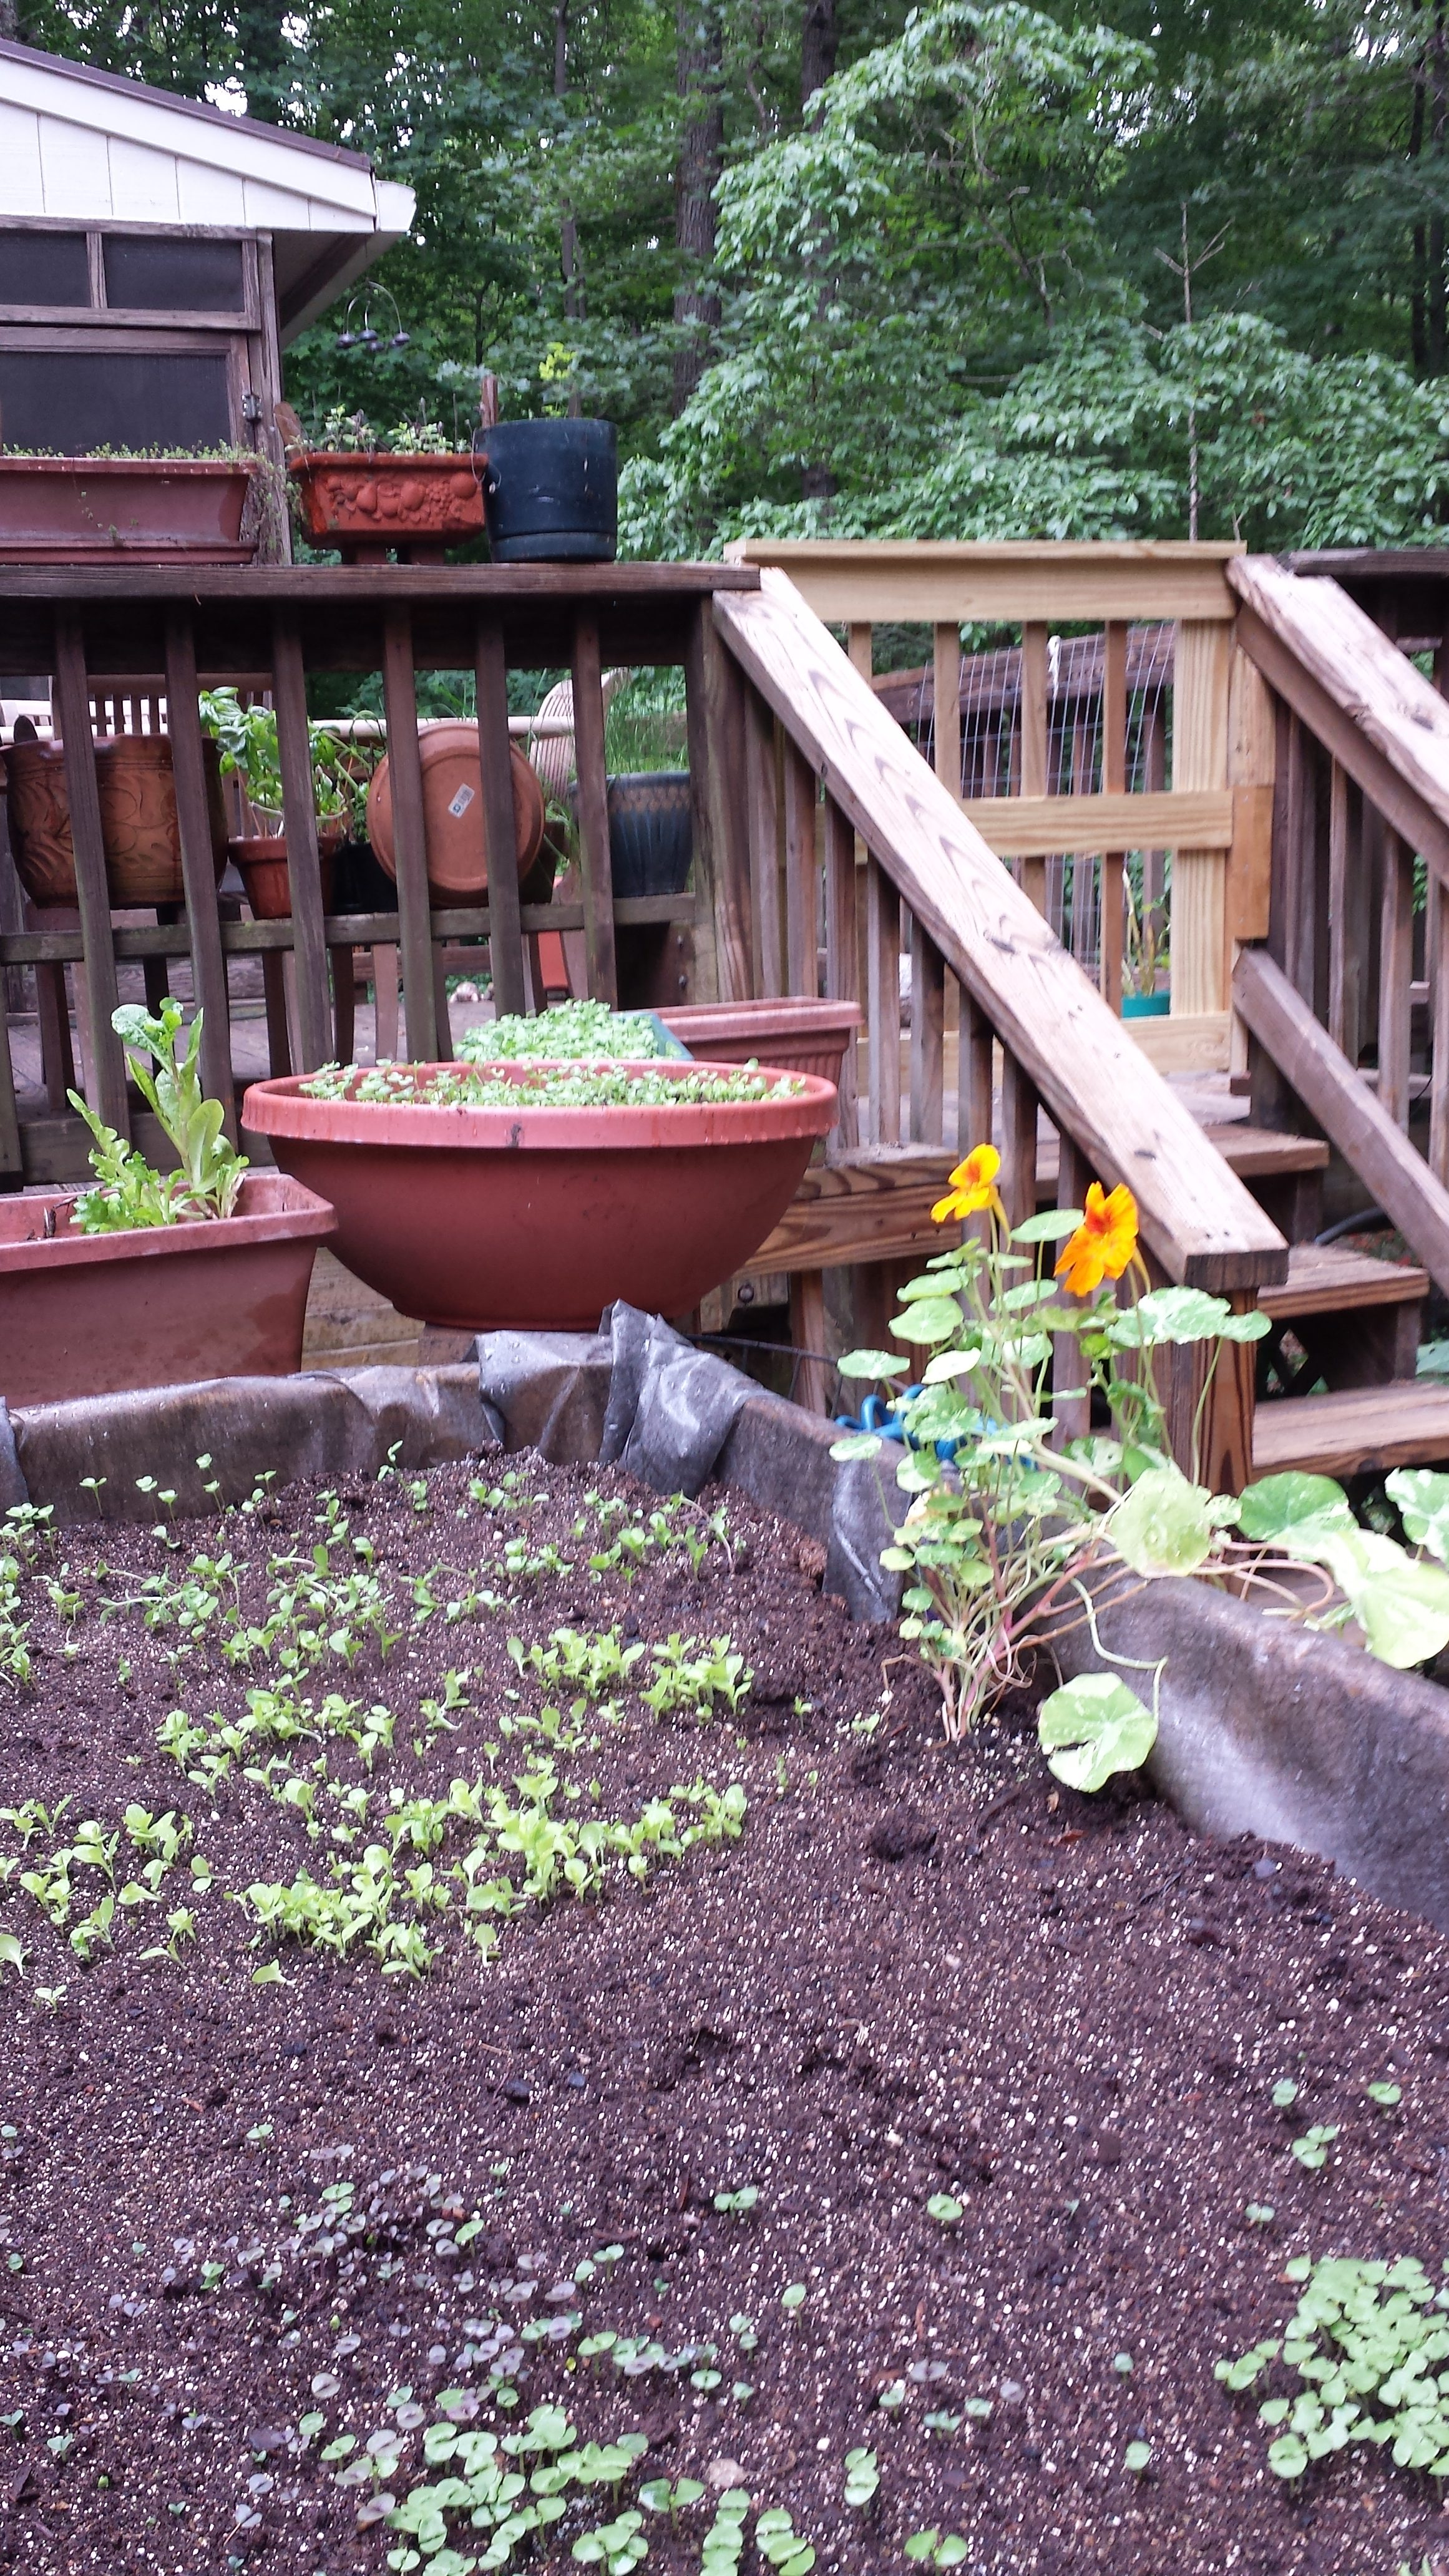 Nasturtium, baby lettuces and baby basil are planted in the potted herb garden and raised planter bed